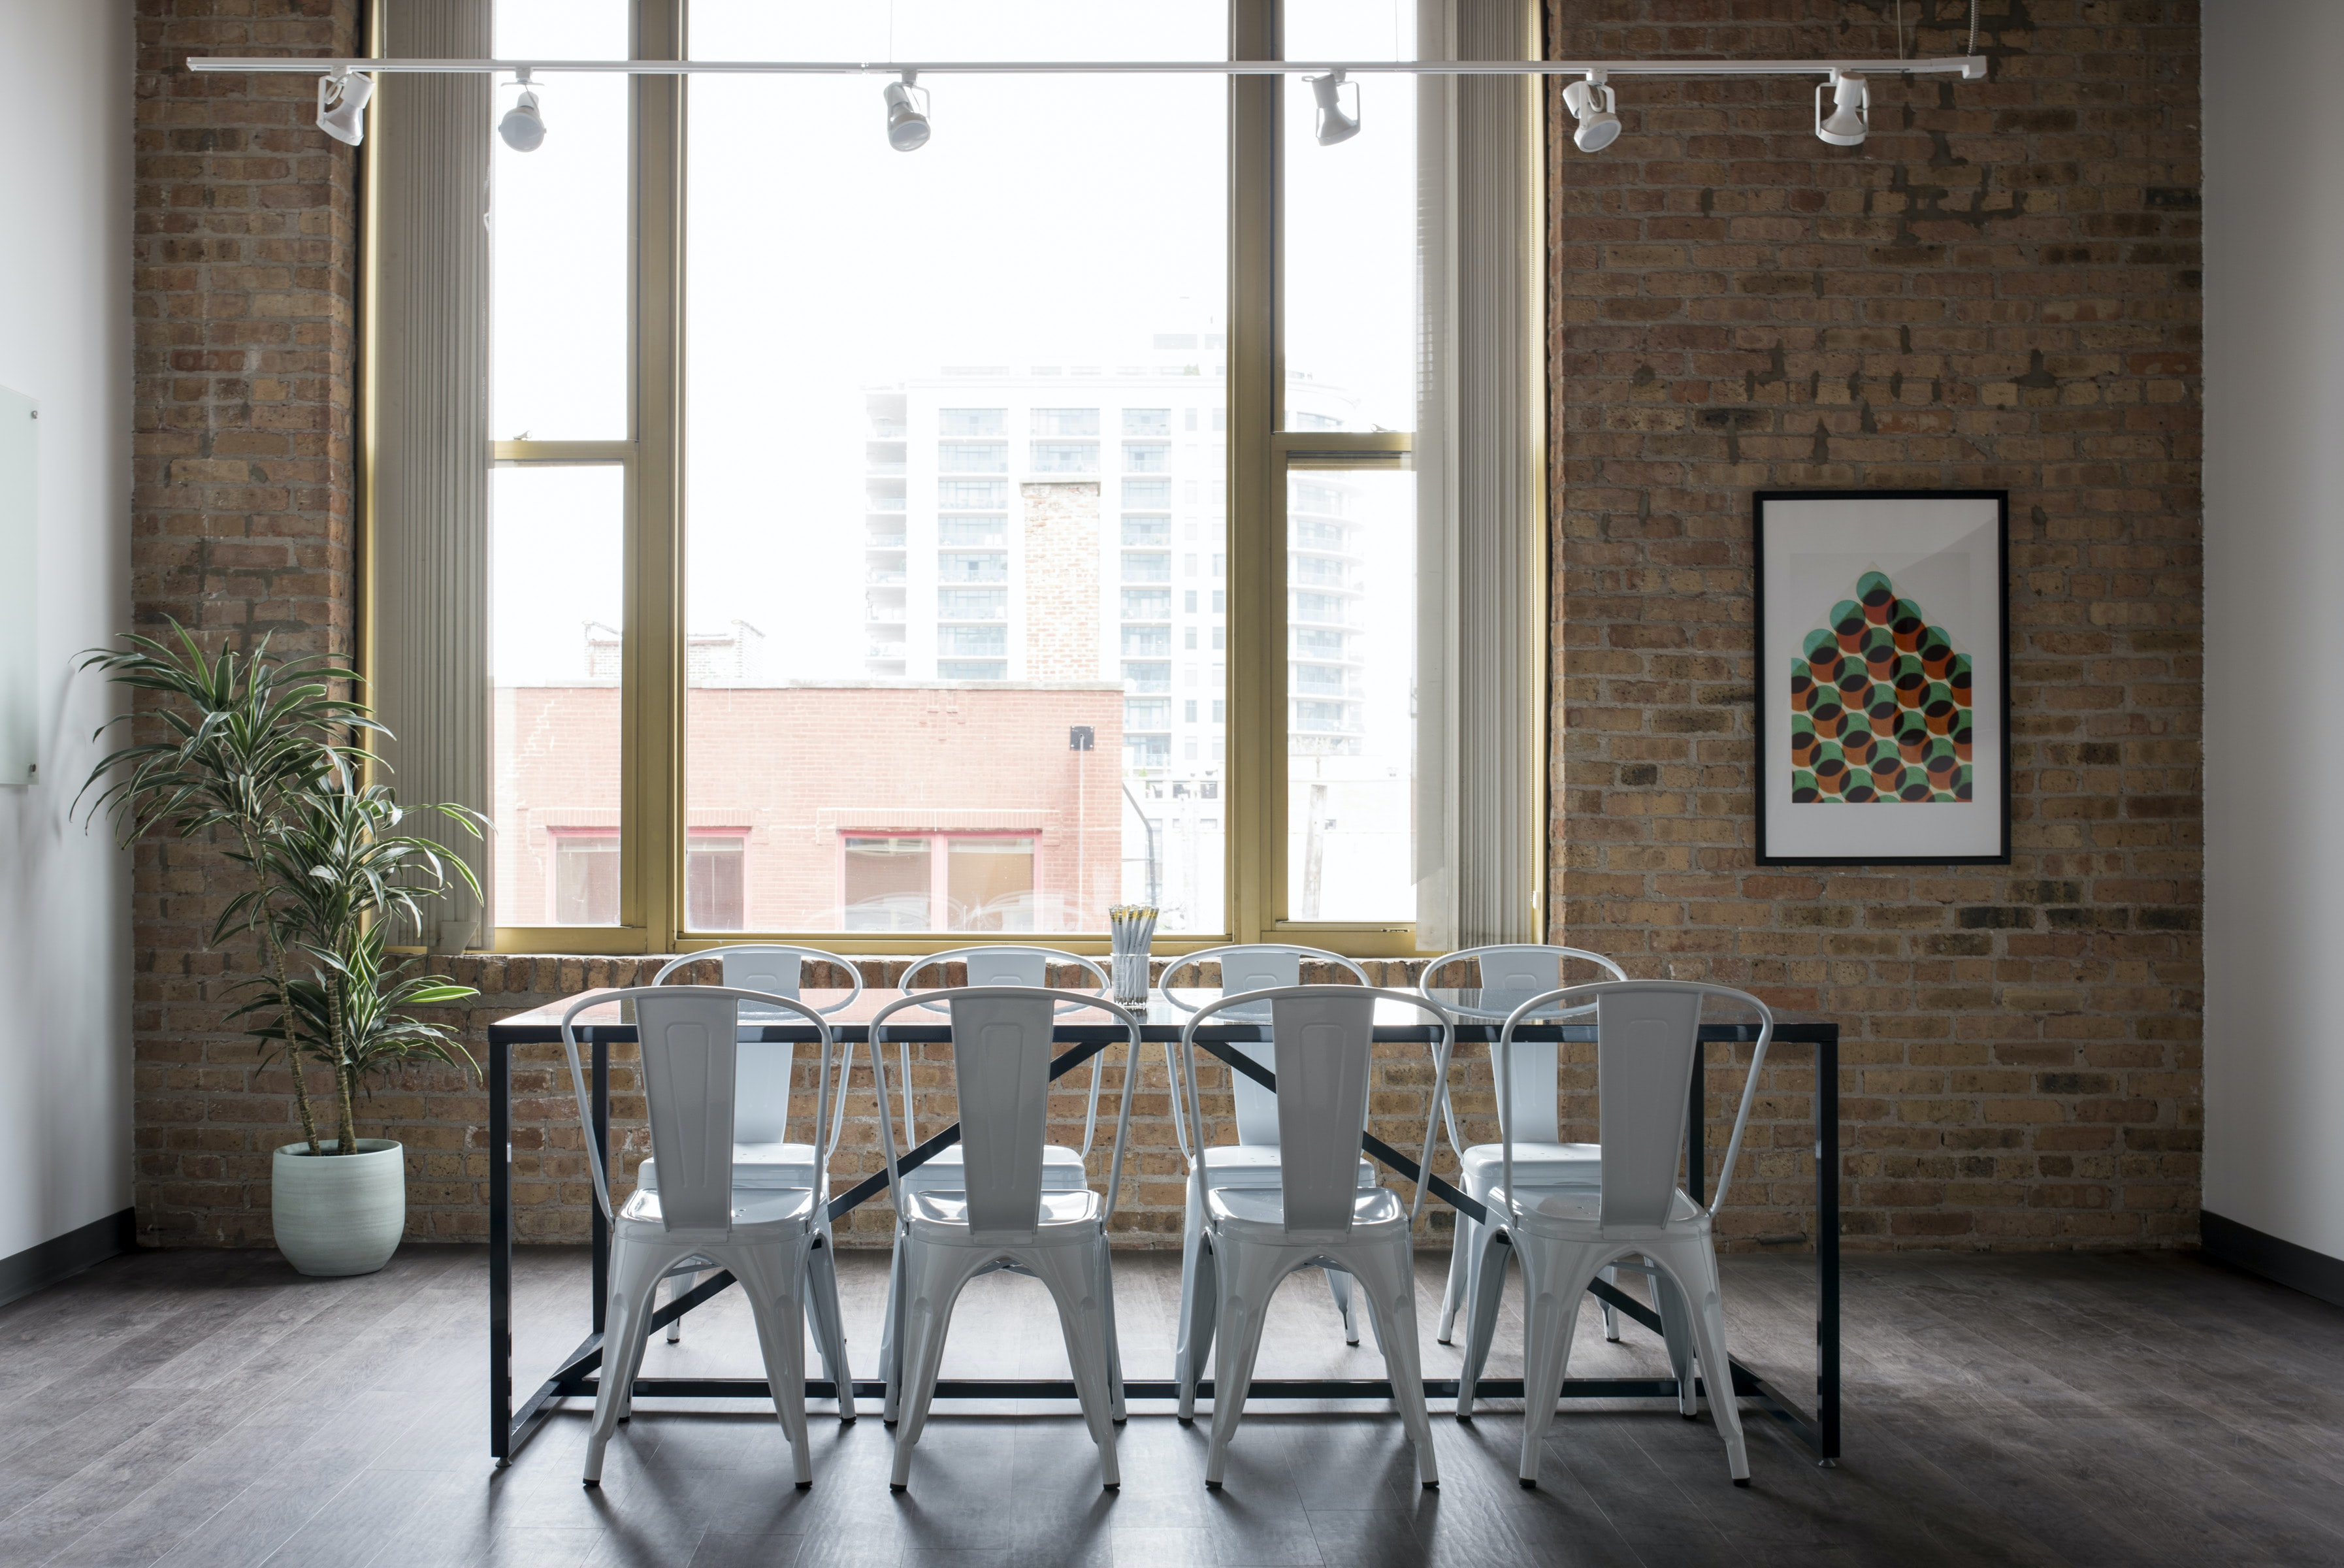 Plastic chairs at a table in a small meeting room